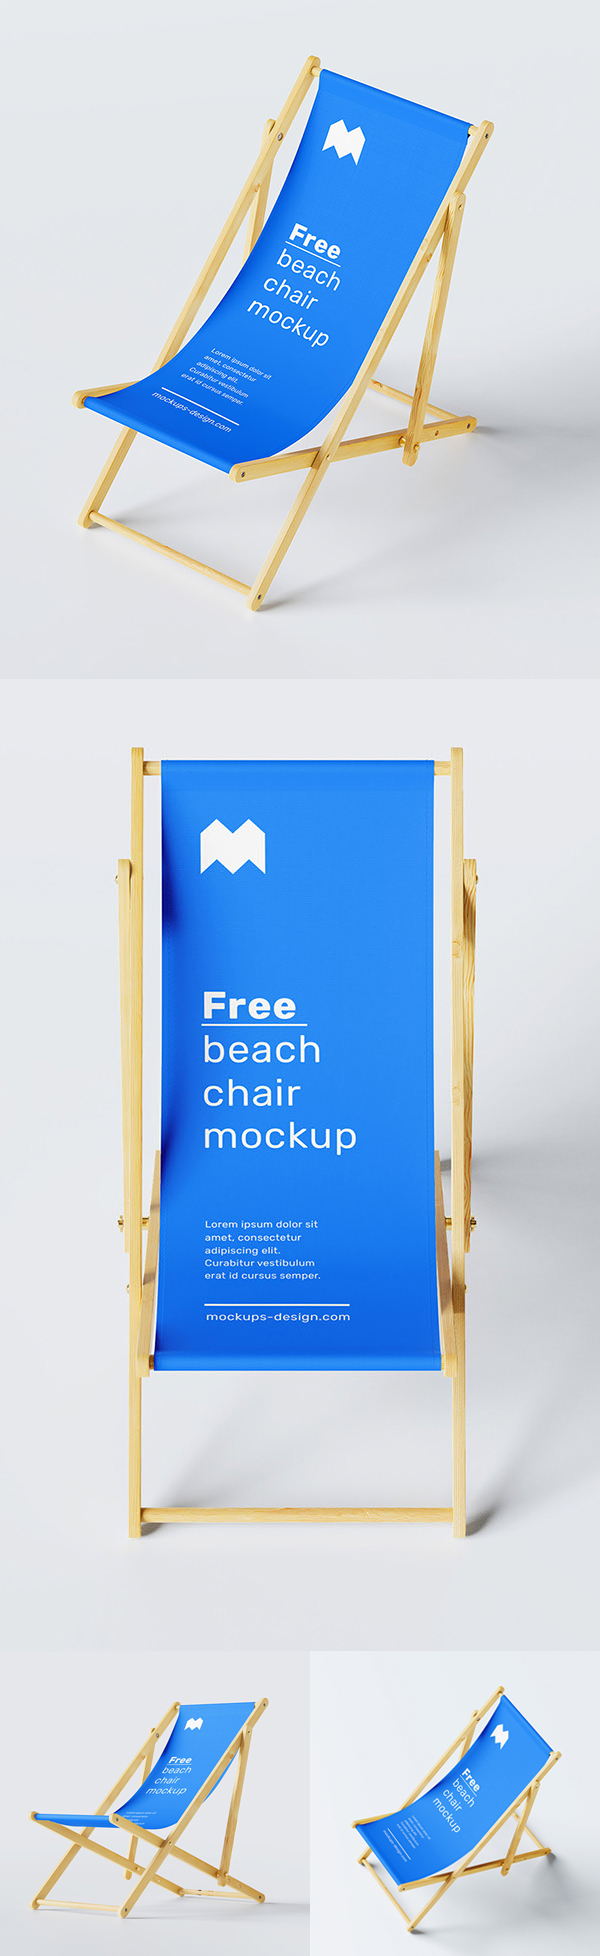 Free Beach Chair Mockup PSD